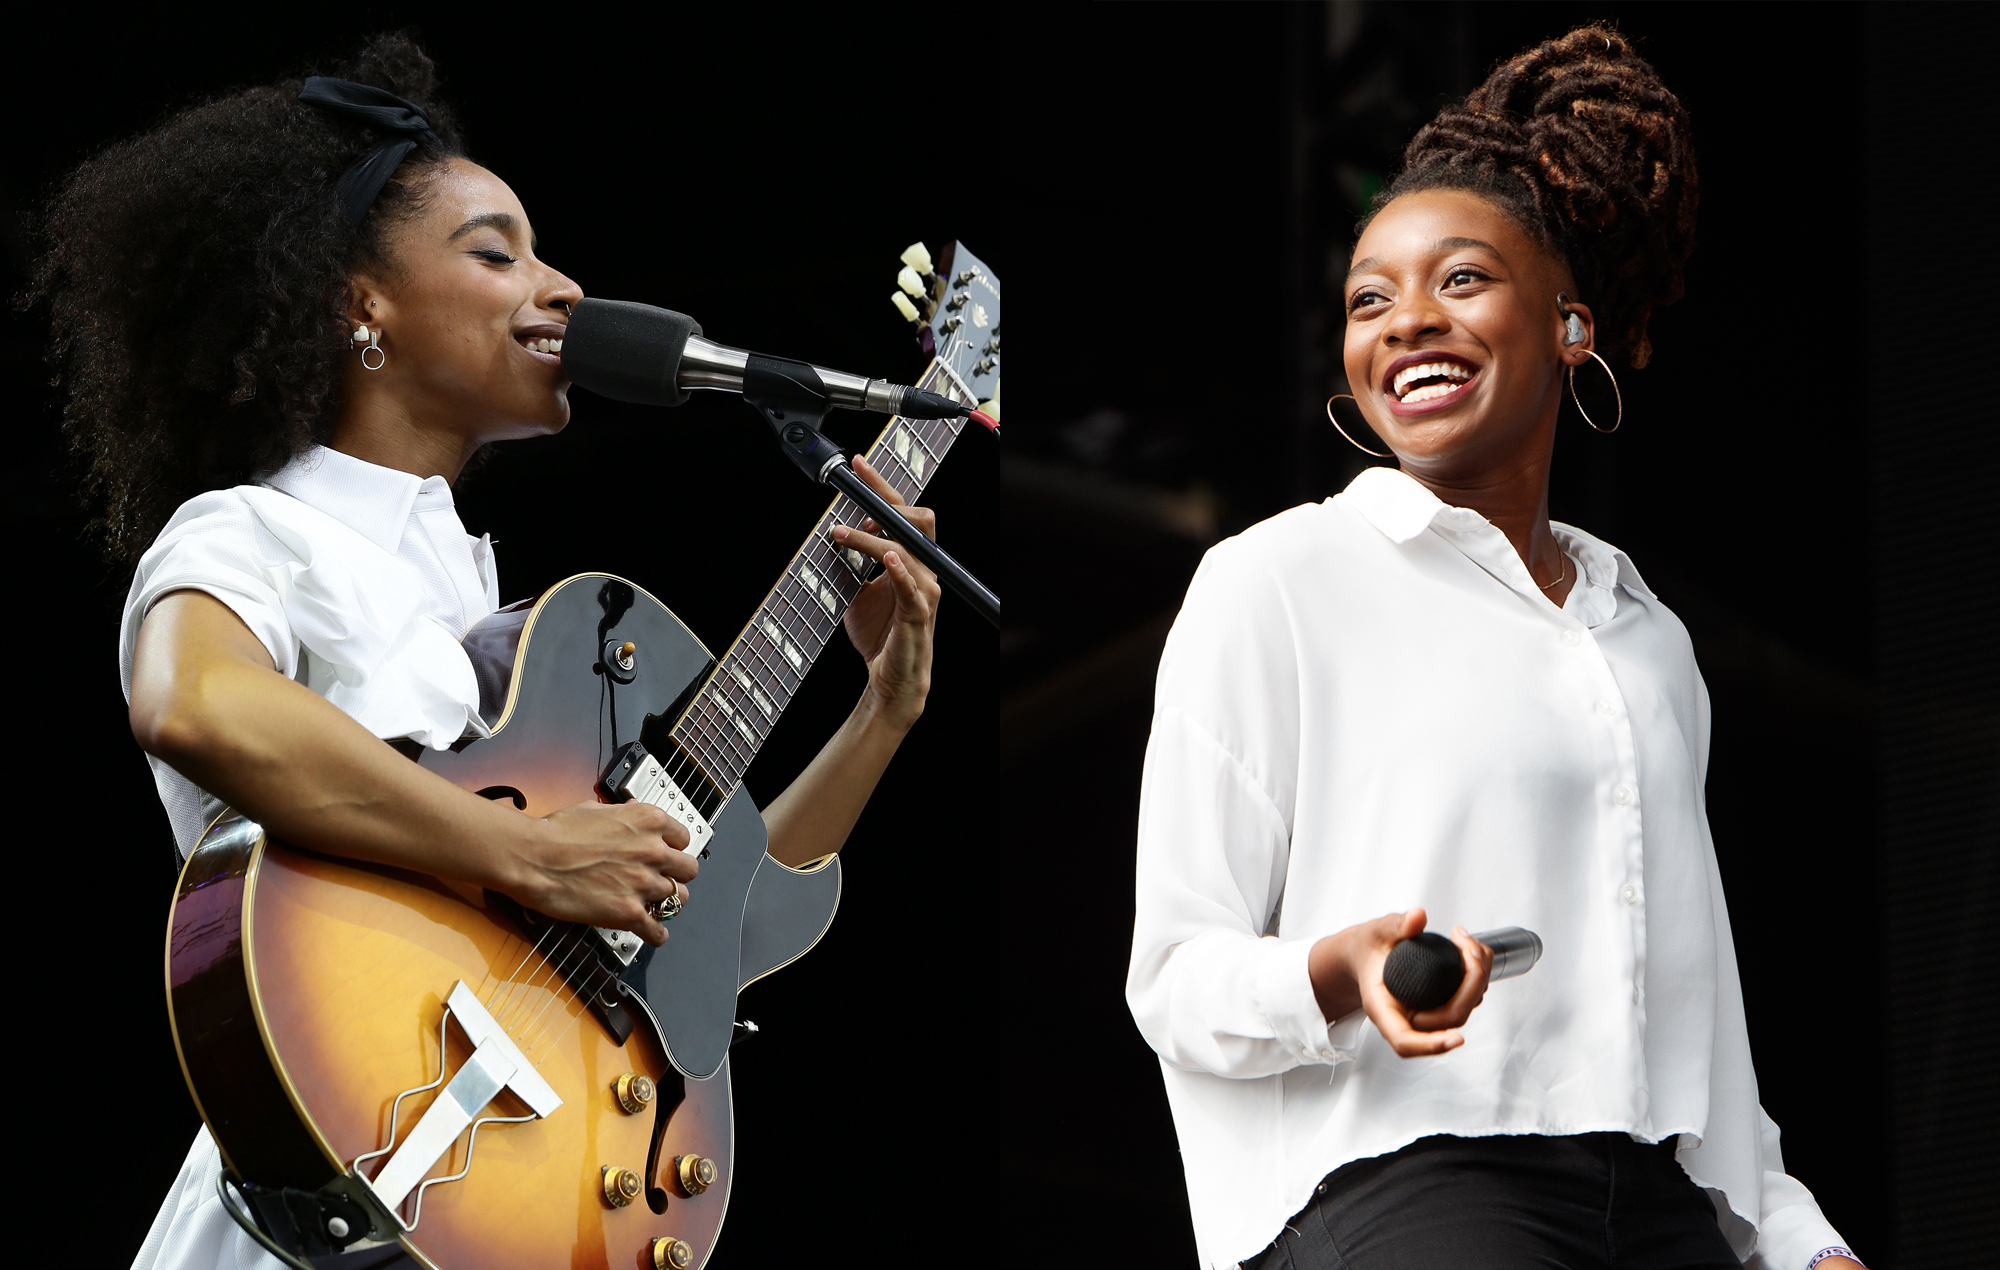 Little Simz Lianne La Havas cover Headie One Both BBC Radio 1 Live Lounge